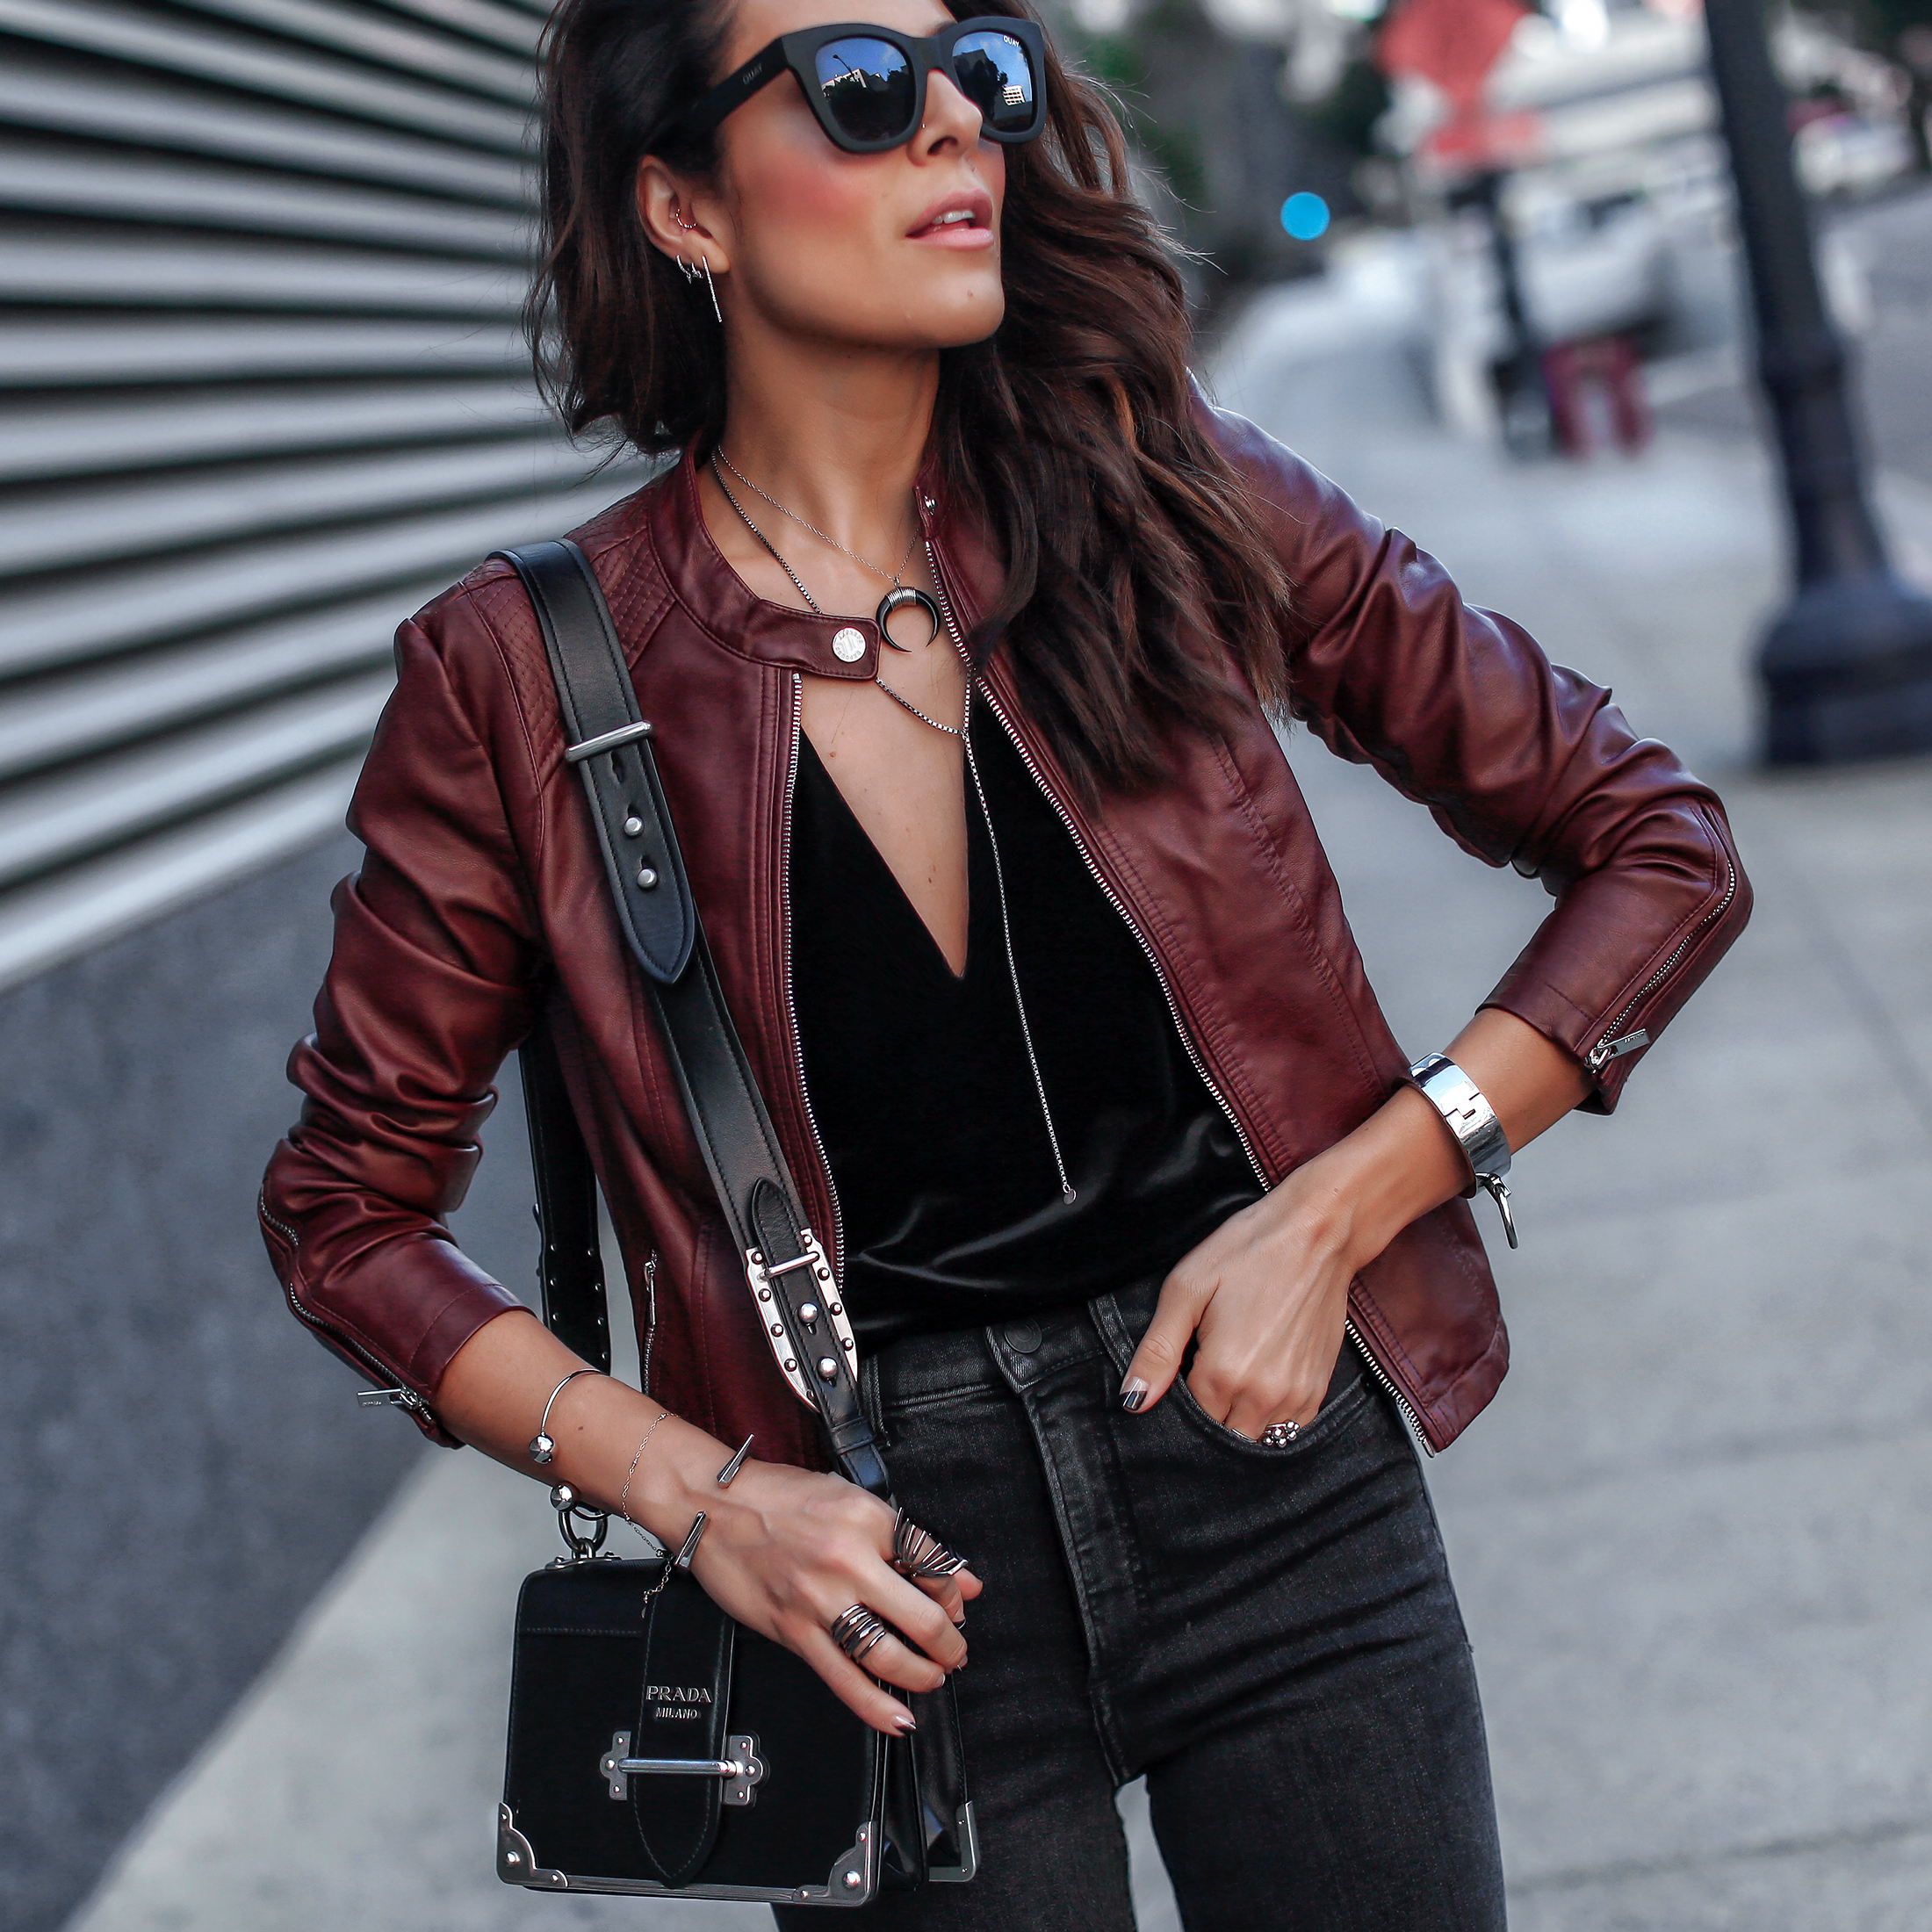 Express Leather Moto Jacket Prada Cahier Bag.jpg